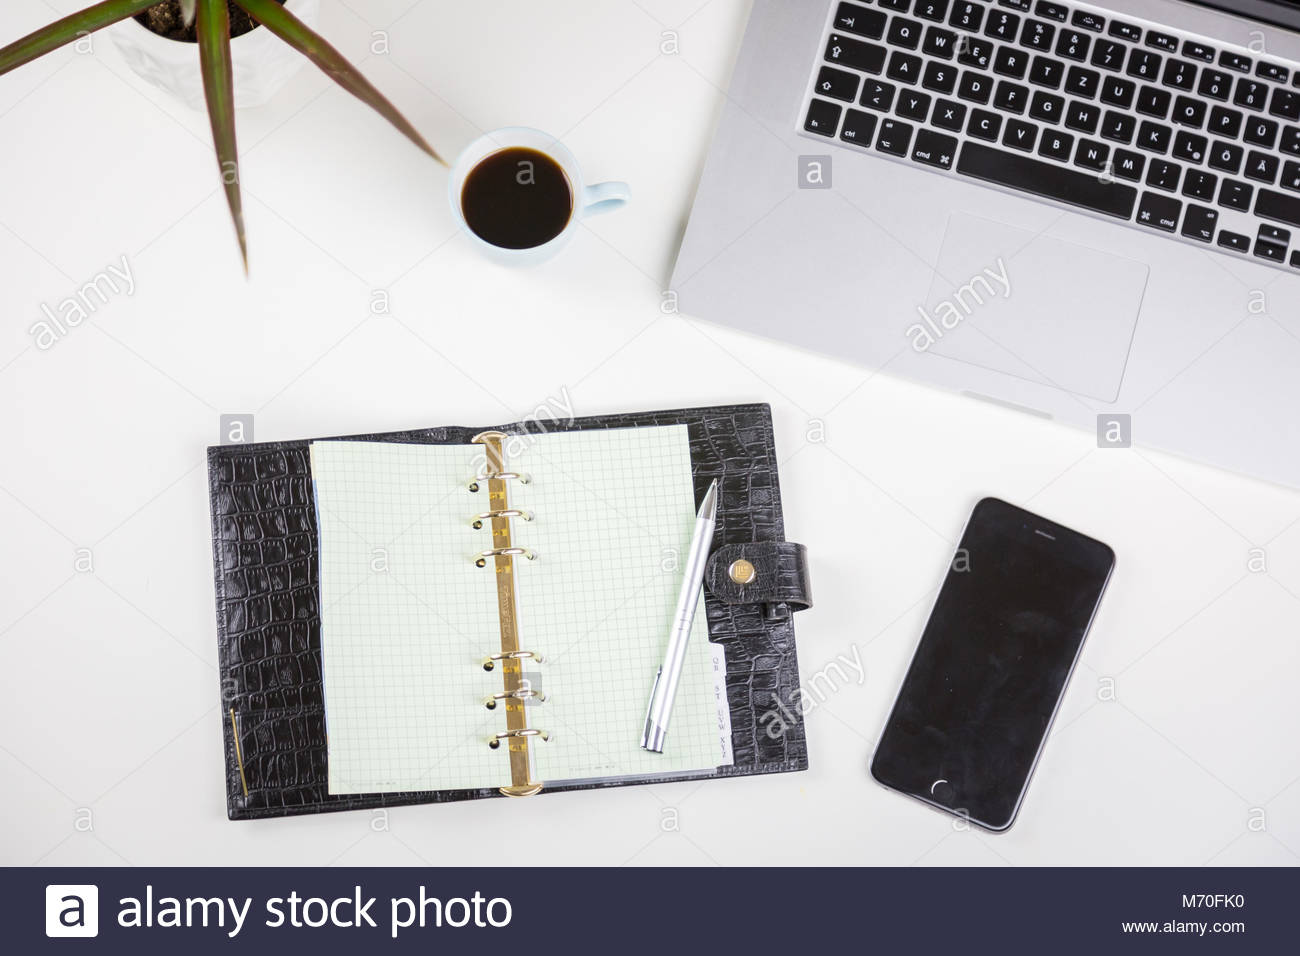 Open diary alongside a potted plant and mobile - Stock Image